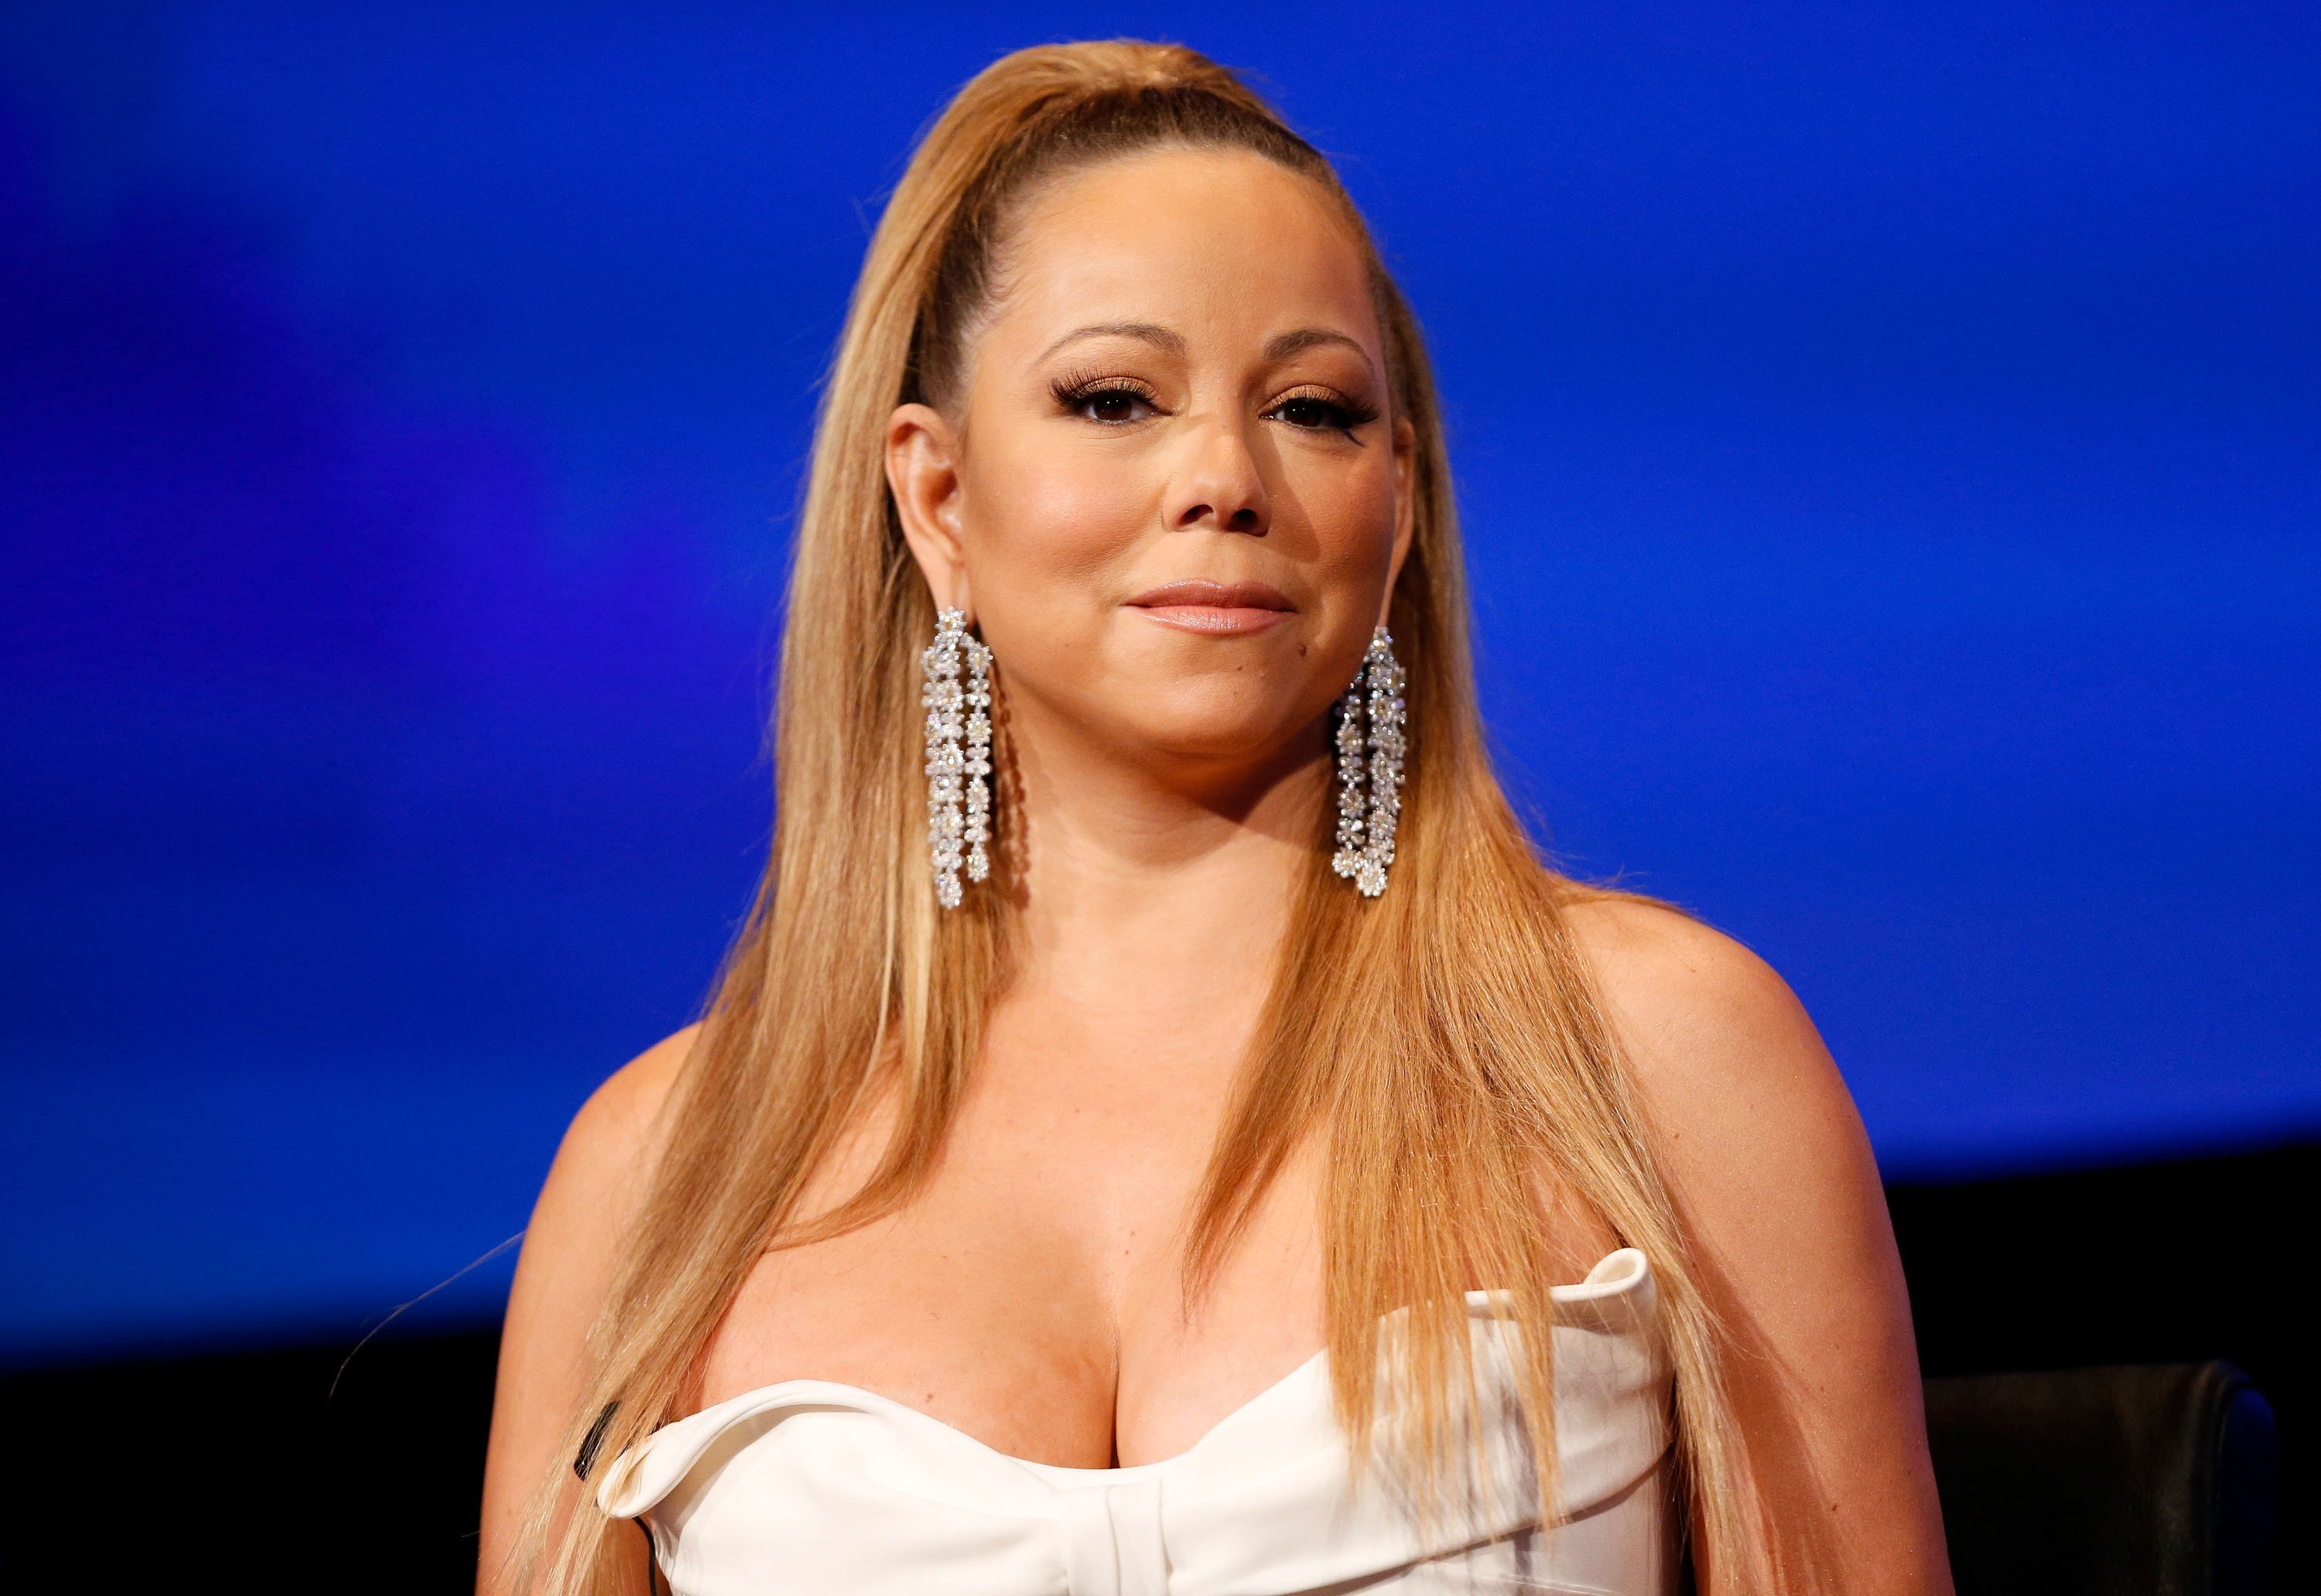 Mariah Carey speaks during a live Q&A during the season premiere screening of Fox's 'American Idol' at Royce Hall, UCLA on January 9, 2013 in Westwood, California. | Photo: GettyImages